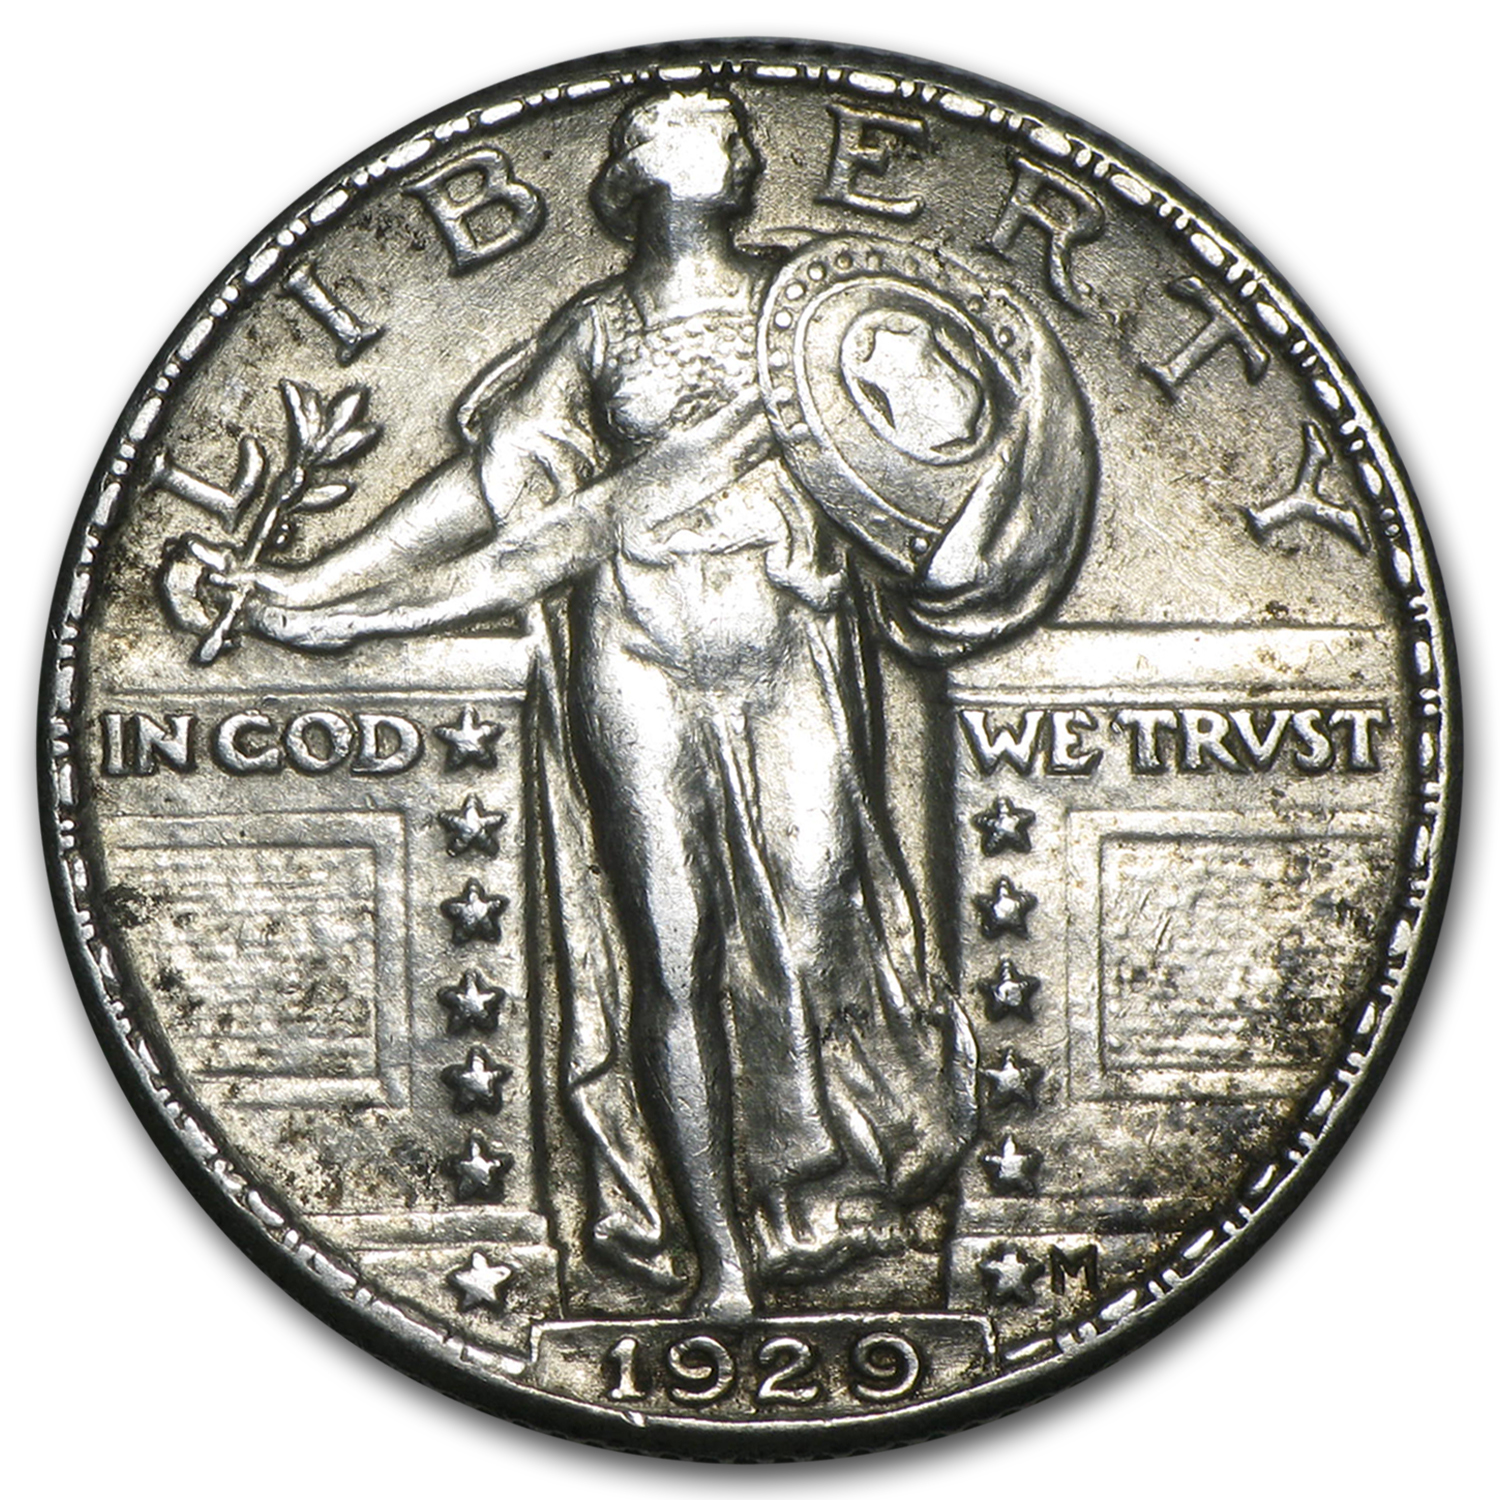 1929 Standing Liberty Quarter - Almost Uncirculated